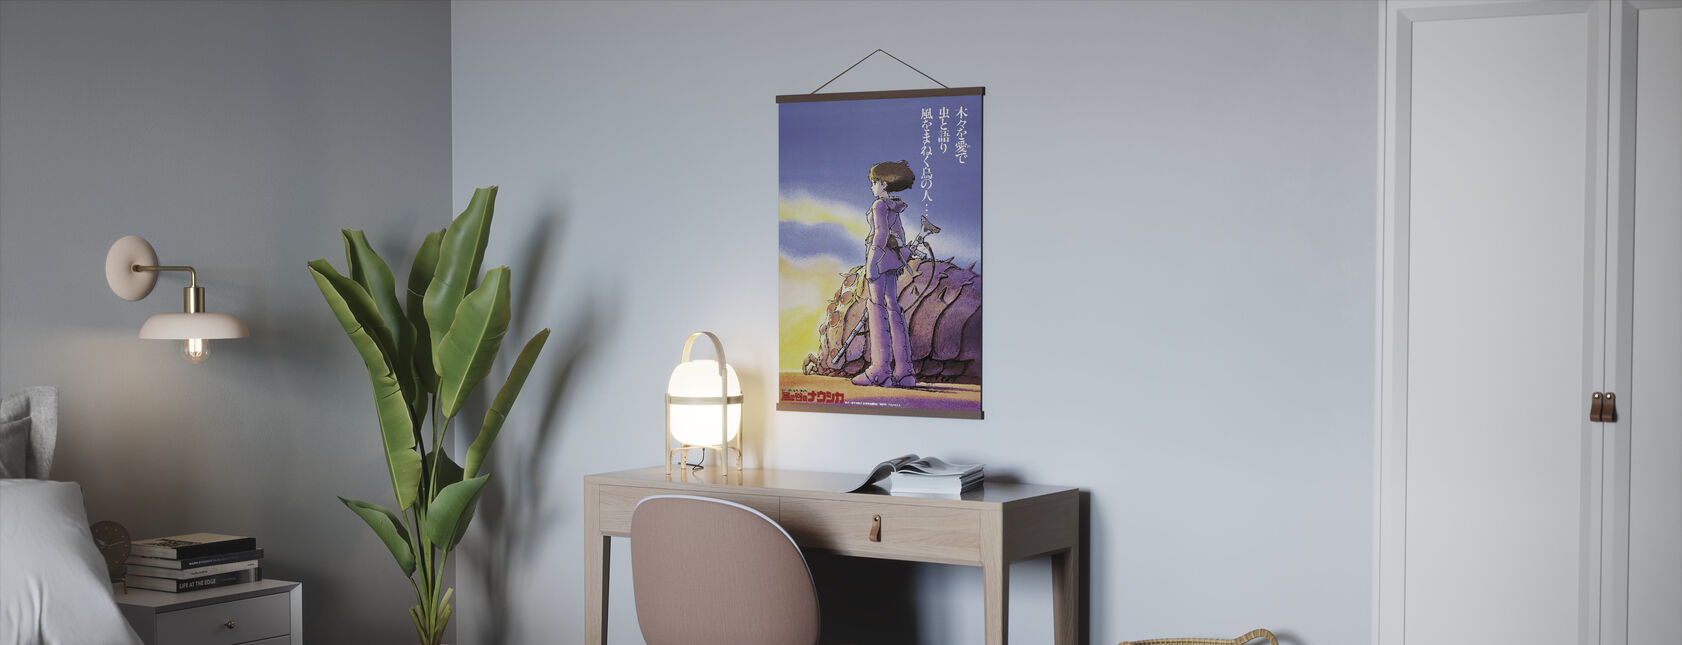 Warriors of the Wind - Poster - Office